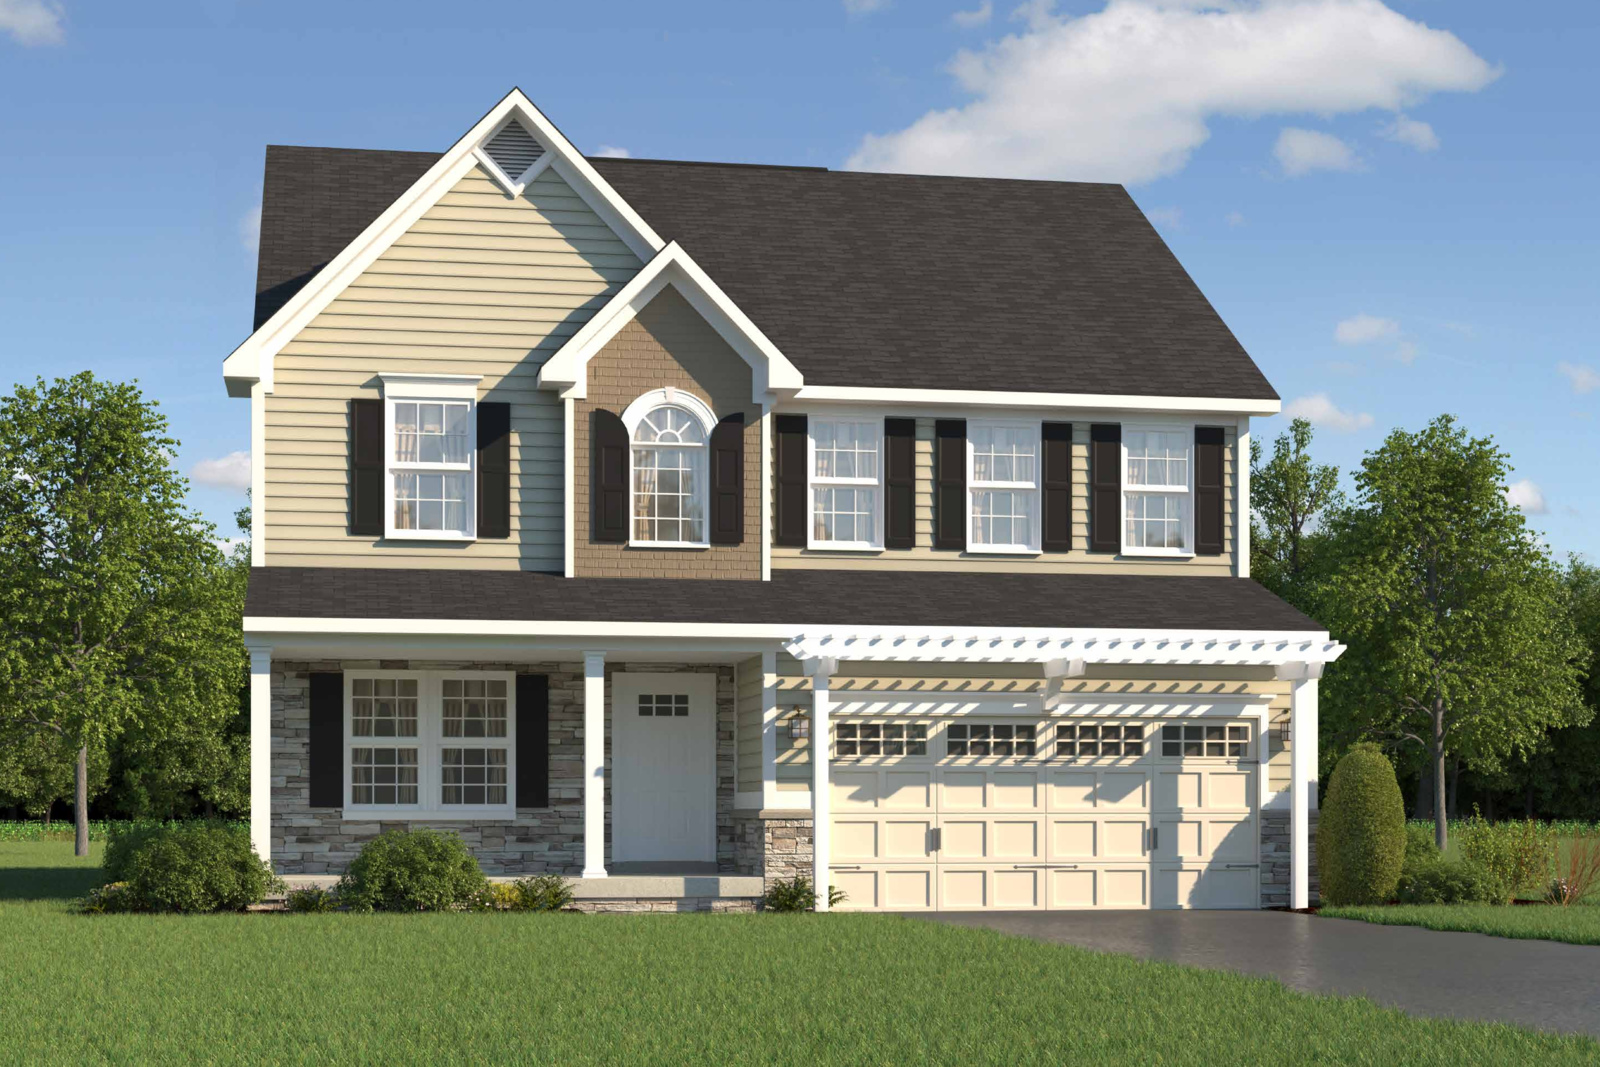 New homes for sale at madison farms single family homes in for Modern single family homes